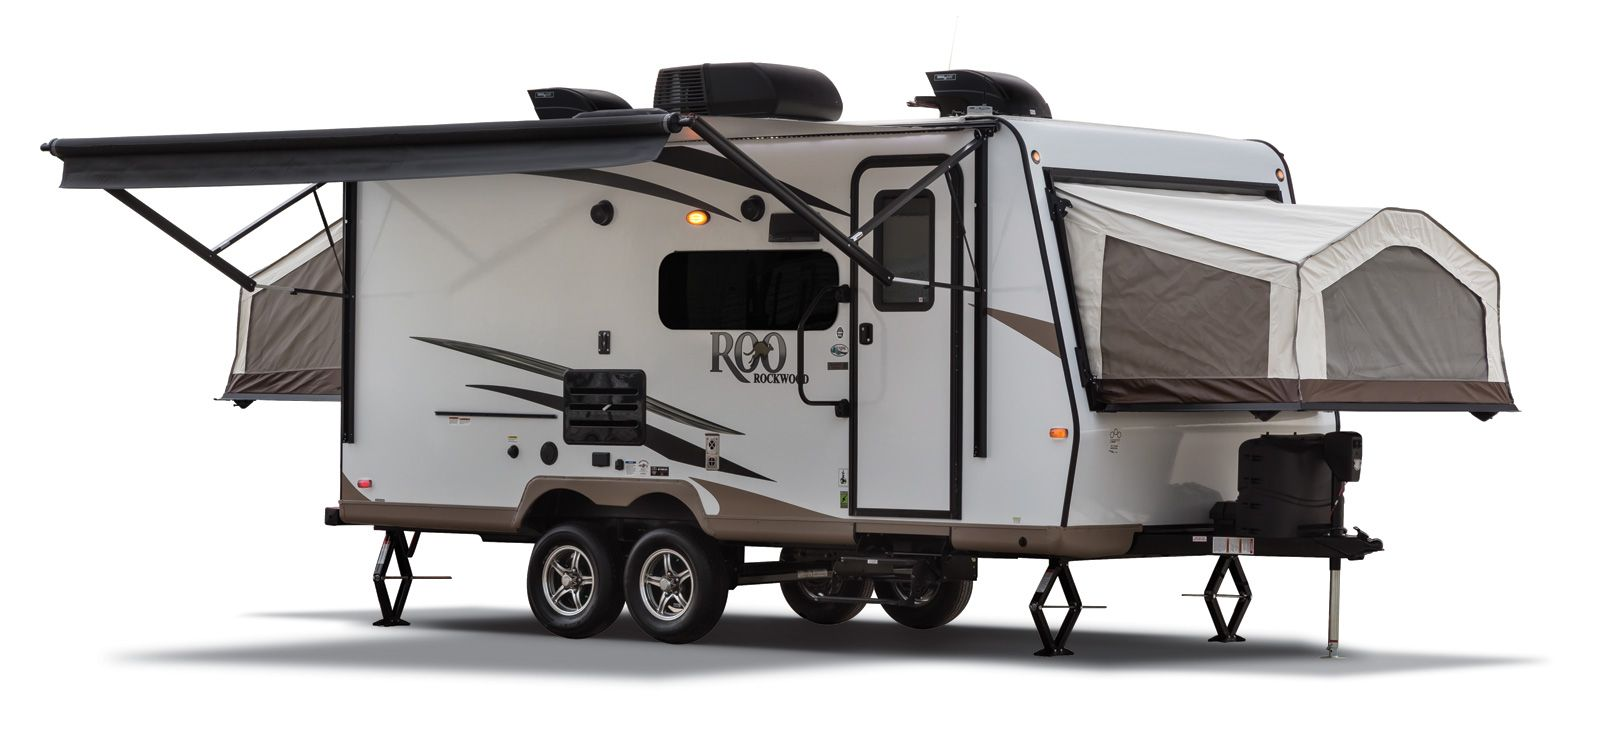 Rockwood Roo Travel Trailers By Forest River Rv Rockwood Roo